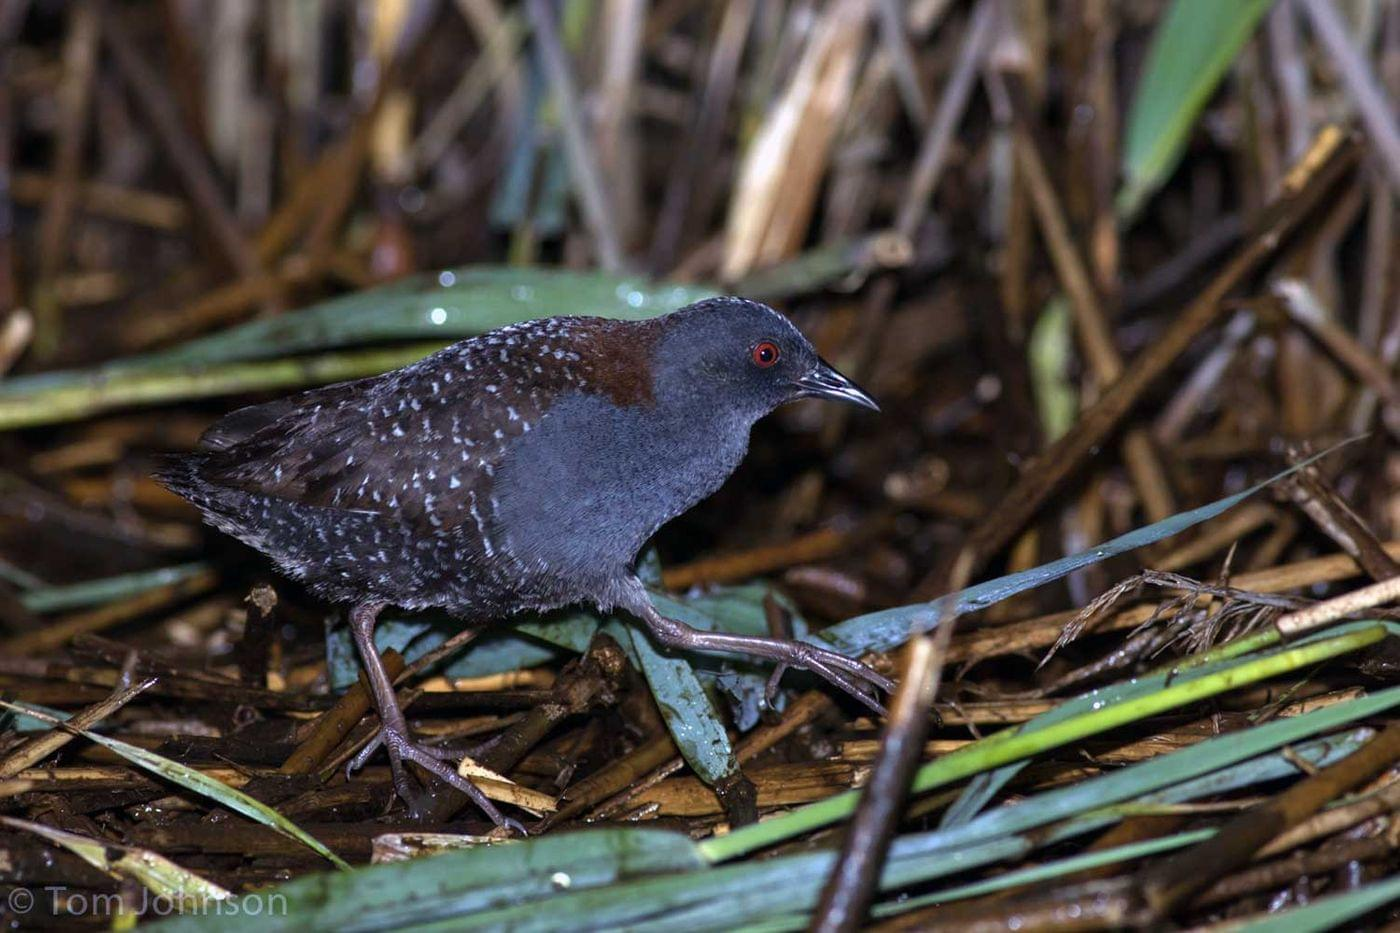 Florida wildlife agency to add rarely seen eastern black rail to endangered species list 3